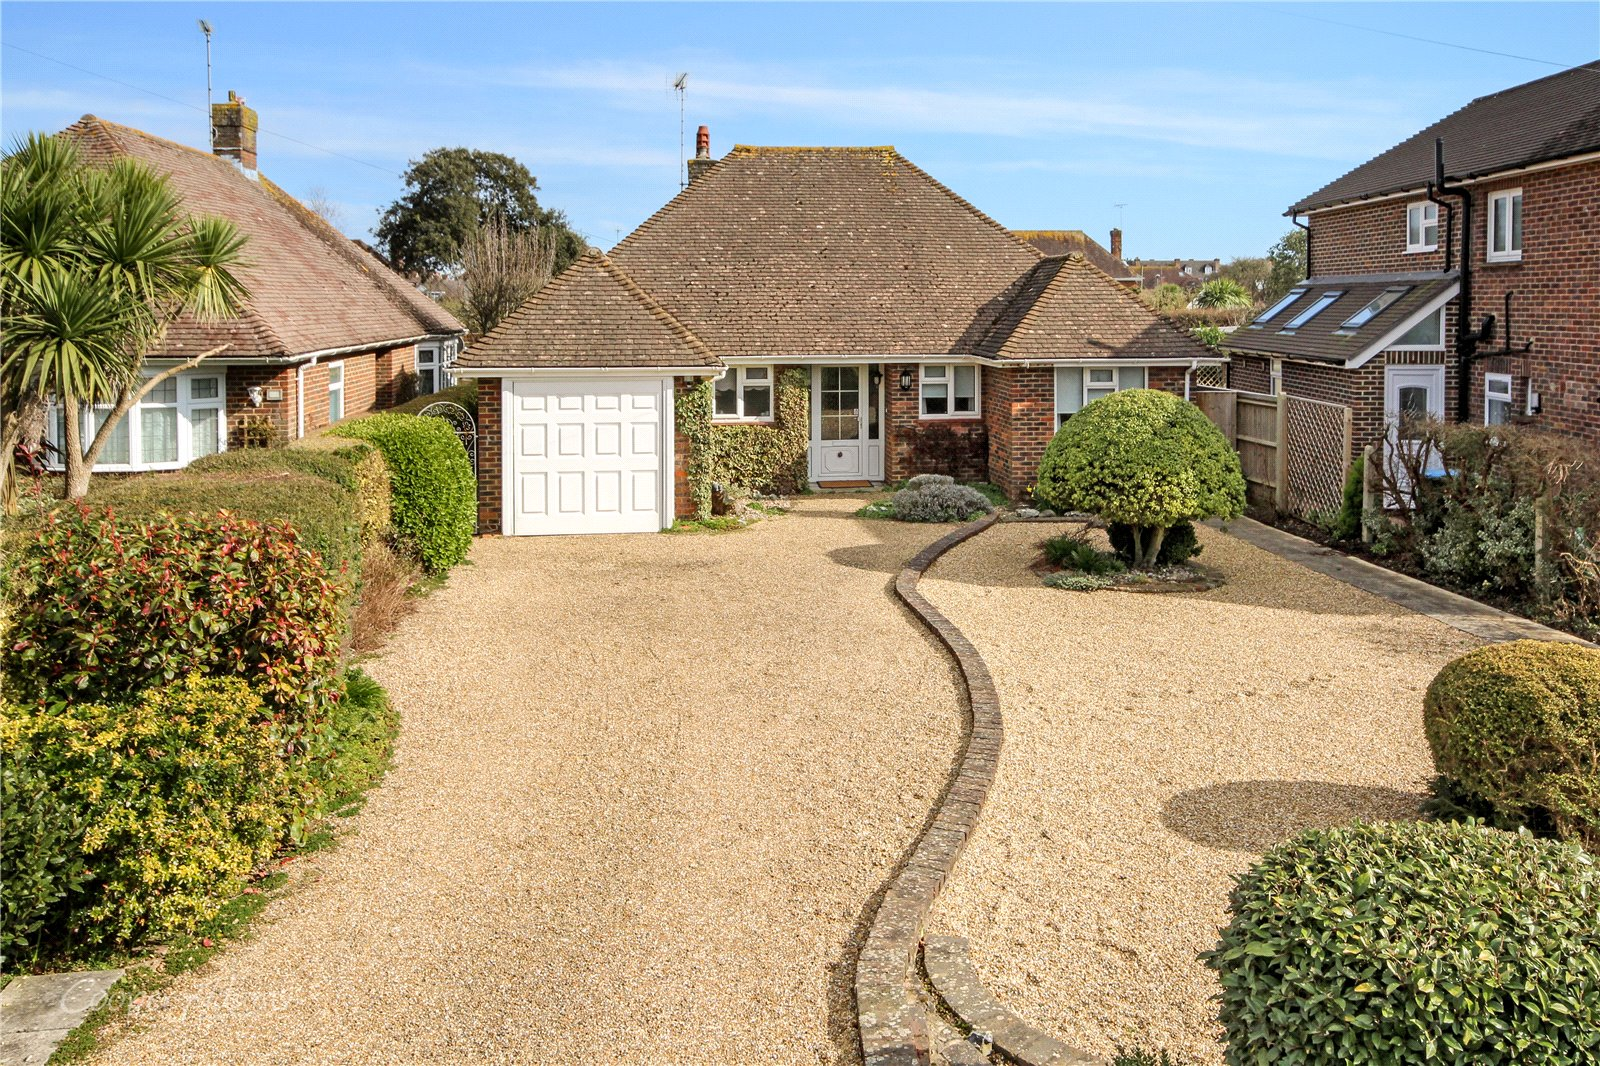 2 bed bungalow for sale in The Ridings, East Preston, BN16